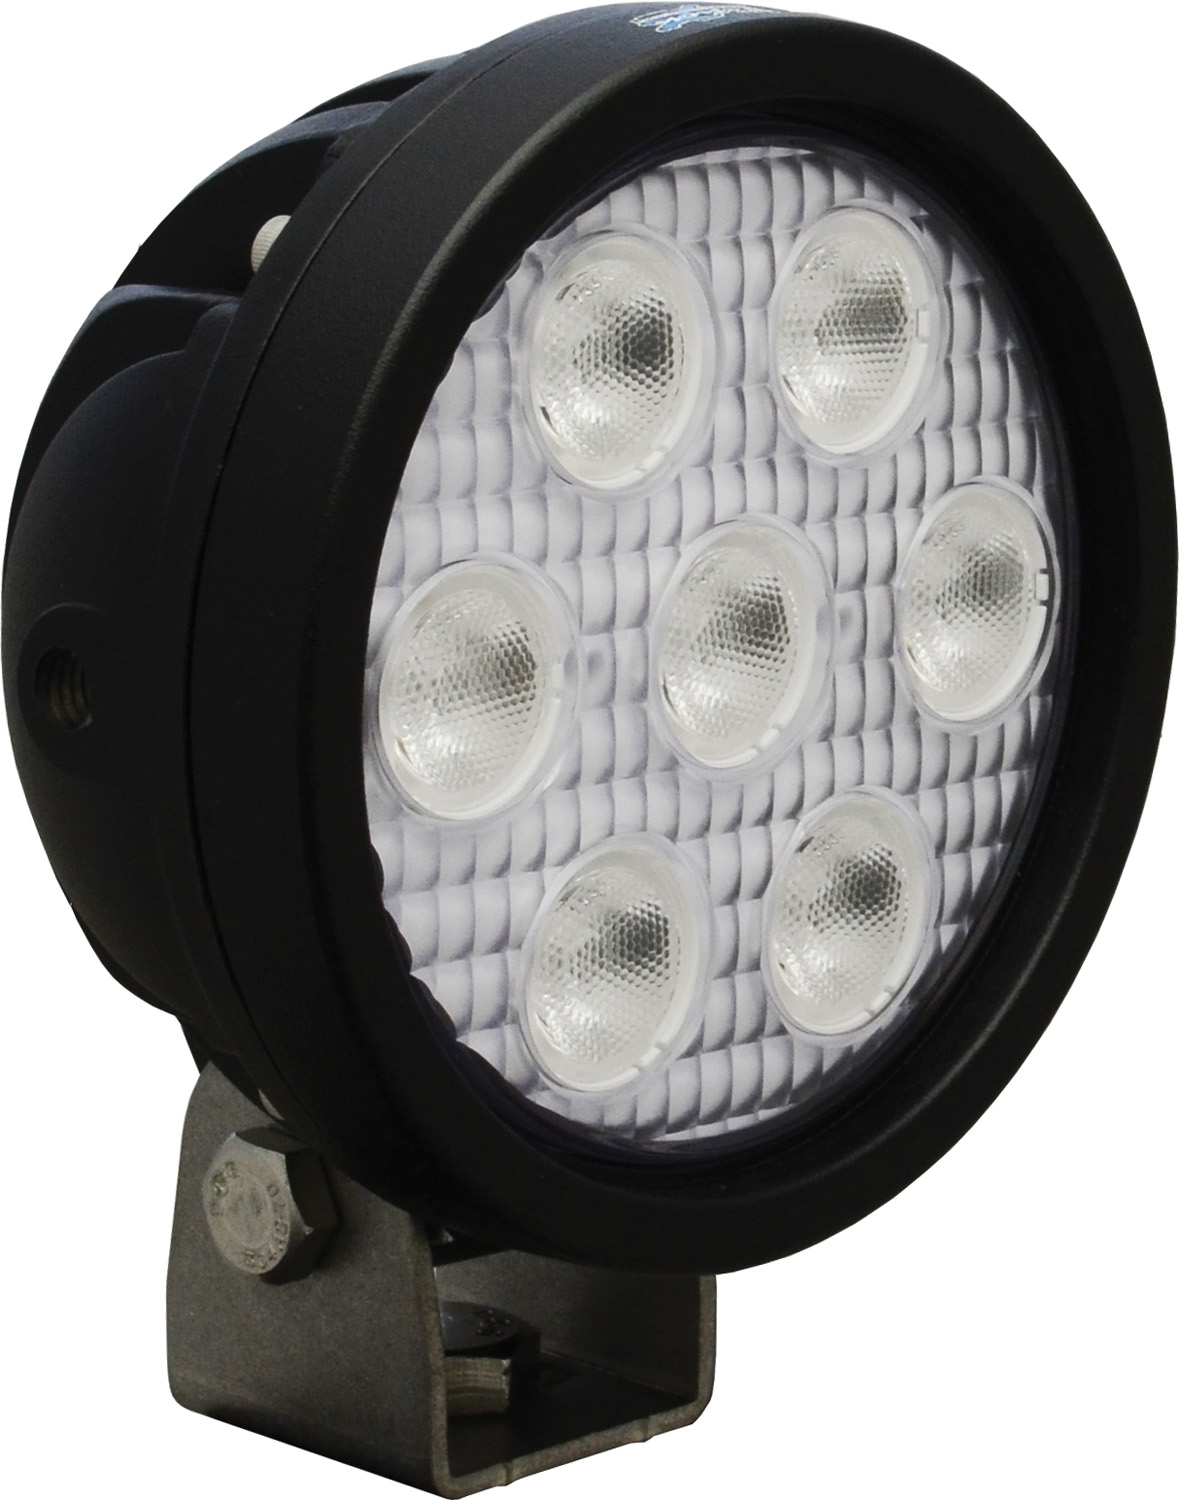 "4"" ROUND UTILITY MARKET BLACK 7 3W LED'S 40ç WIDE"